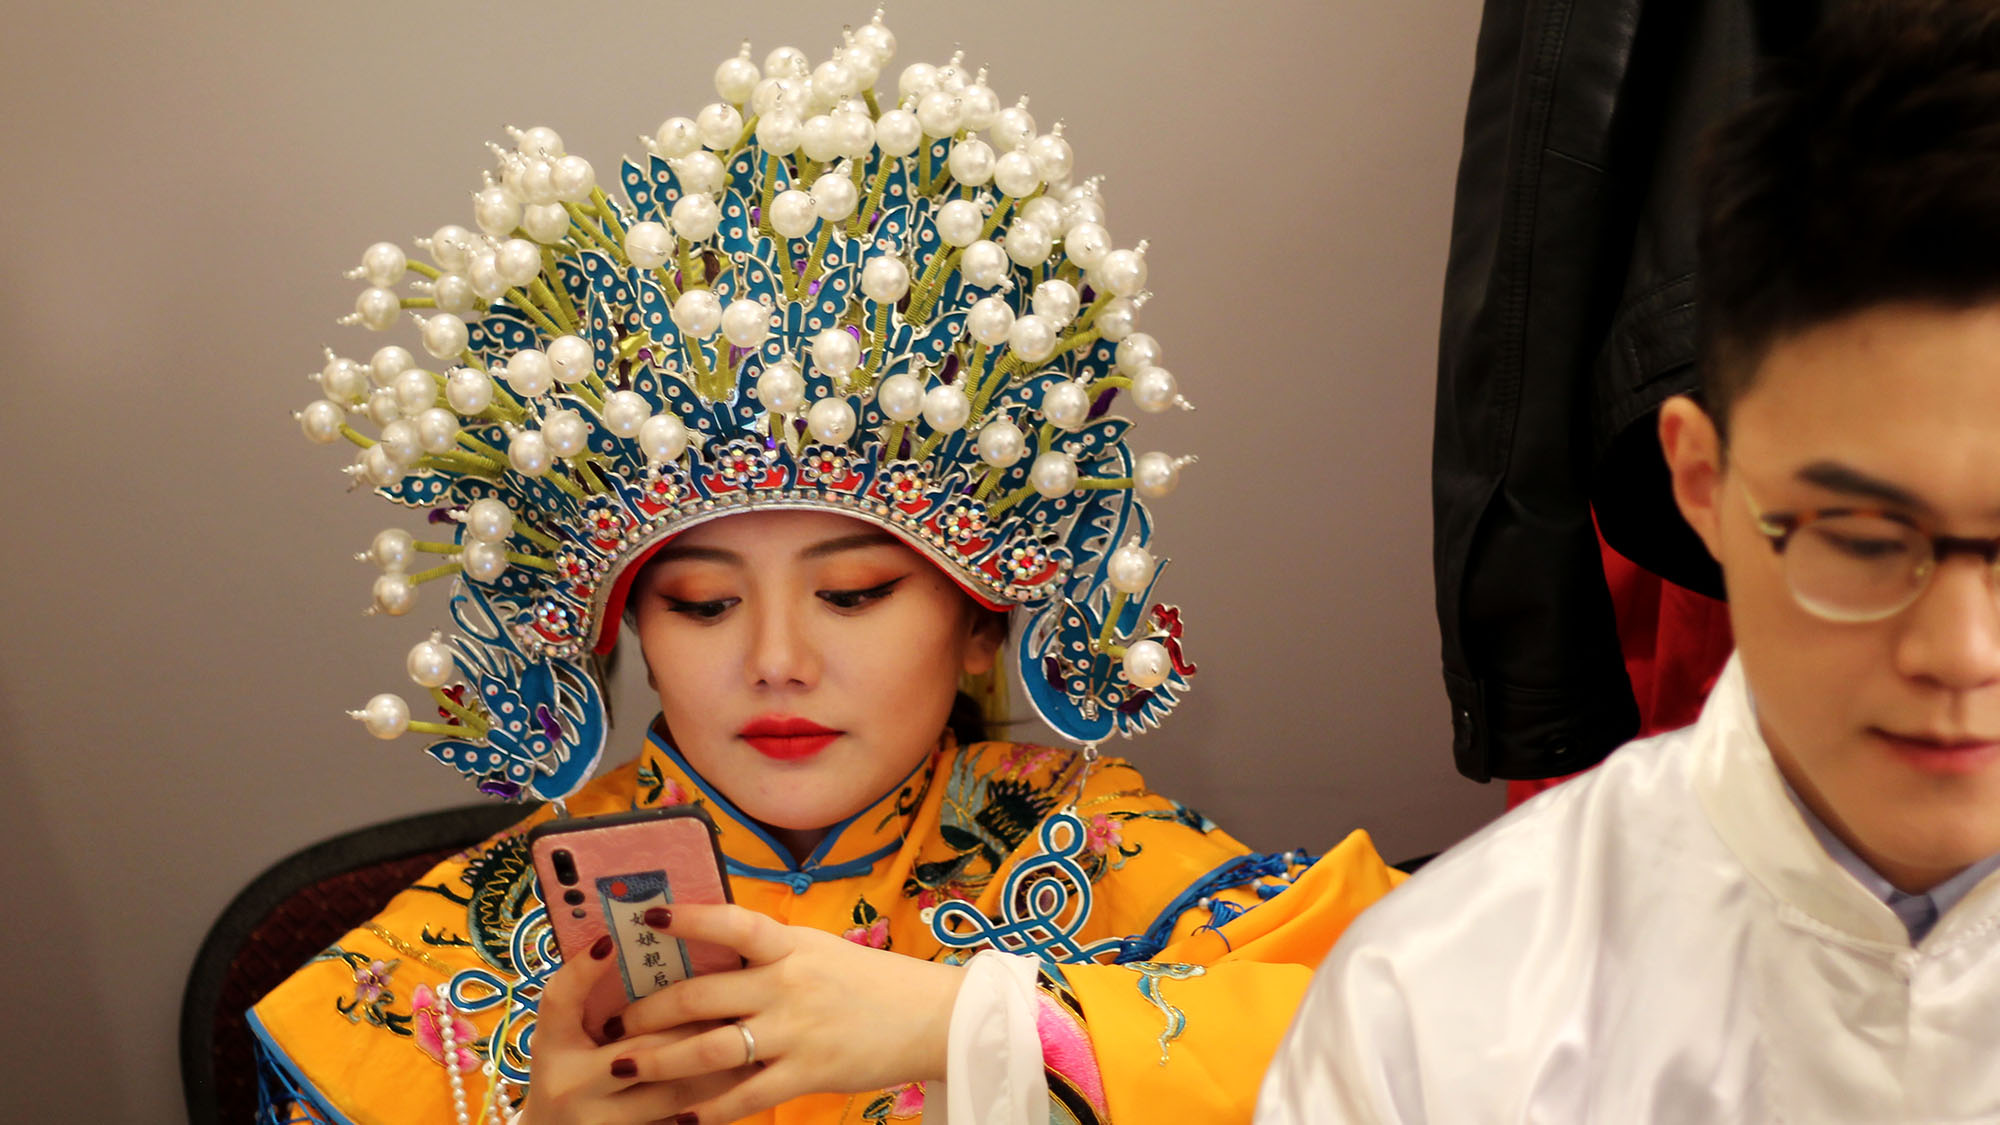 A woman checks her phone in a dressing room while waiting to perform at a gala on Feb. 2.